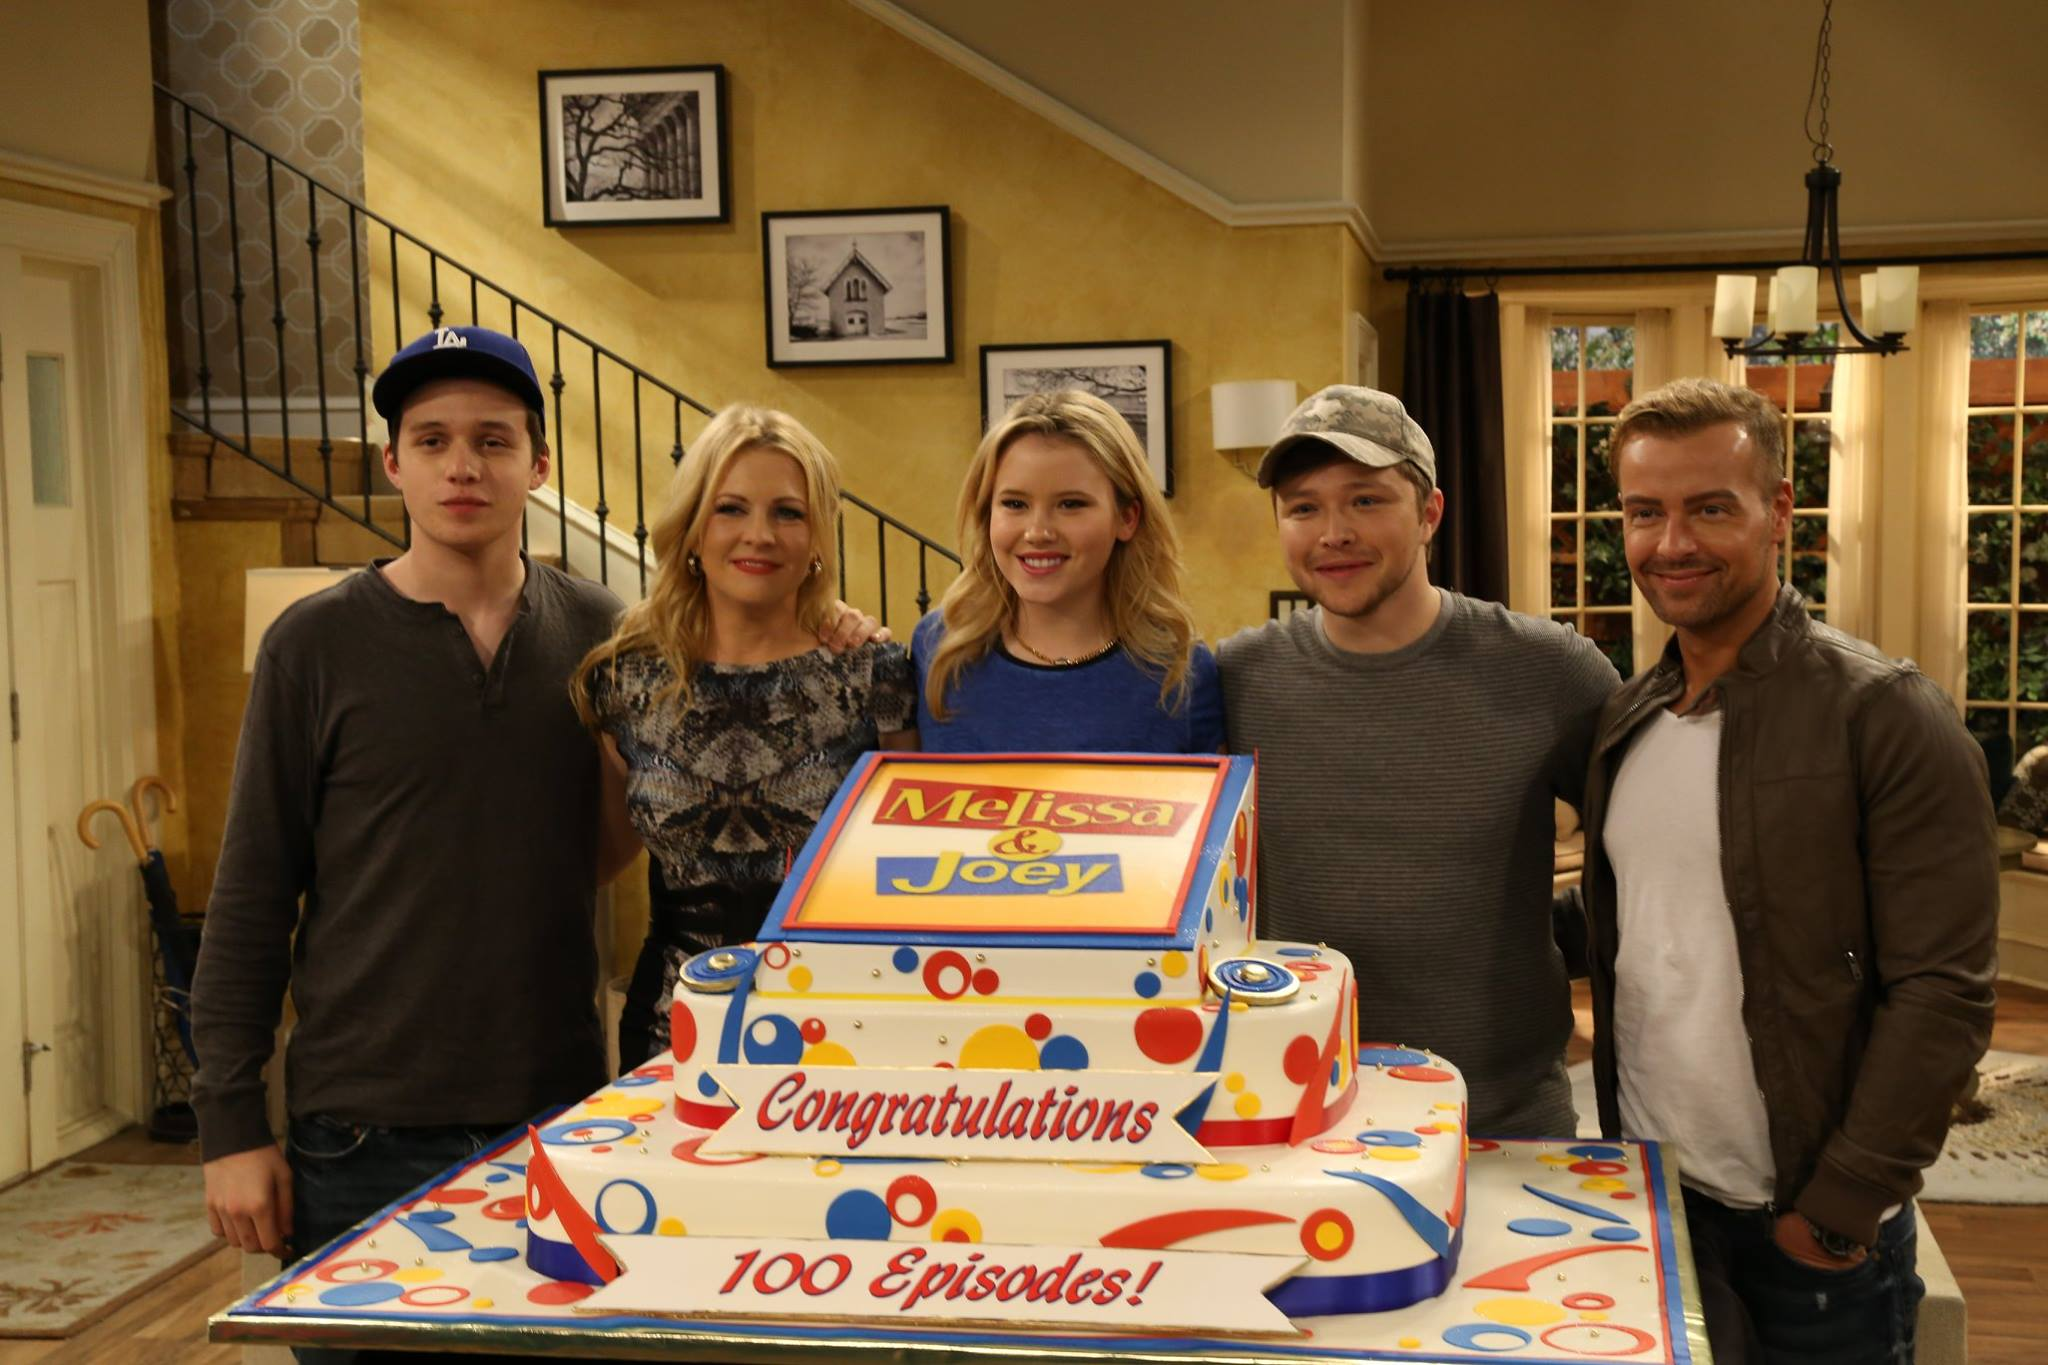 The cast of Melissa and Joey celebrates their 100th episode. Photo from Facebook. Photographs by Keith Dotson can be seen on the stairs.